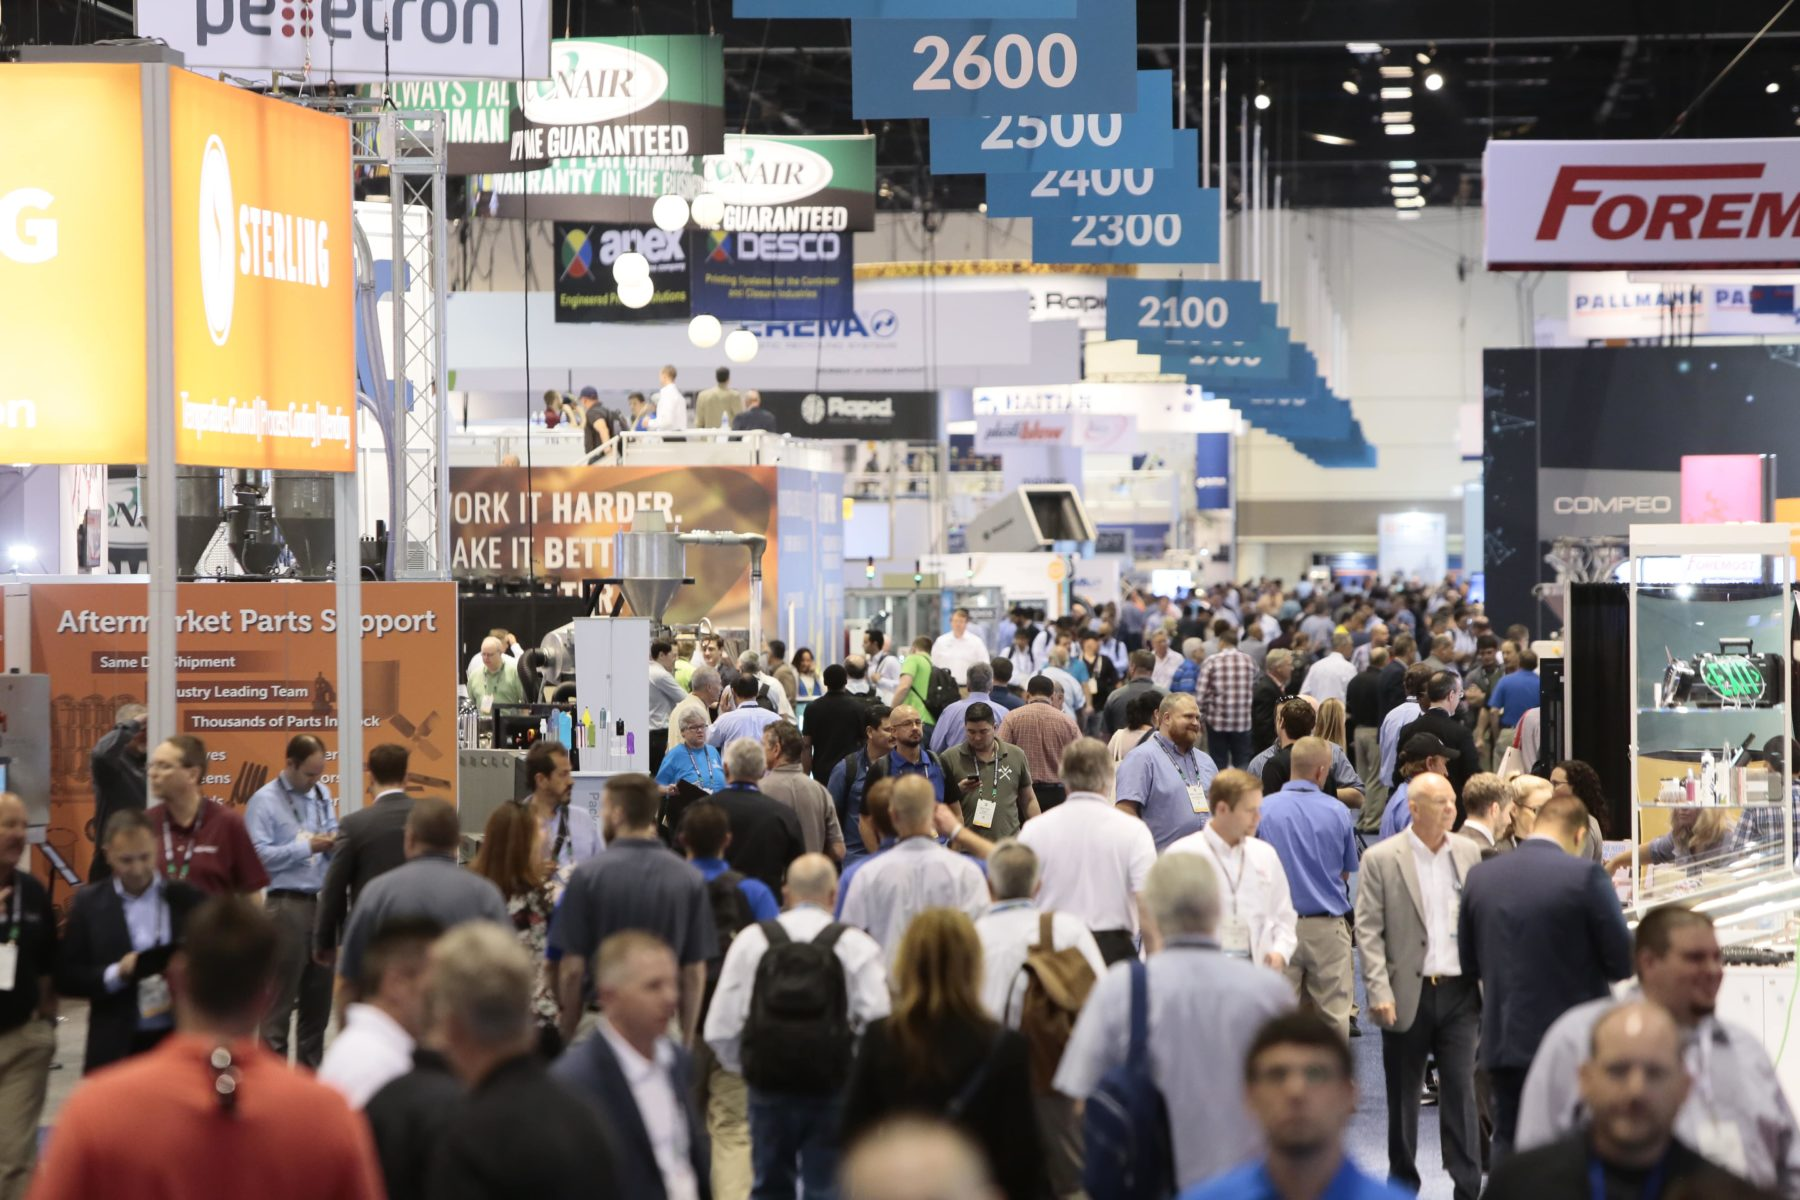 The in-person components of NPE2021: The Plastics Show, scheduled for 17 – 21 May 2021 in Orlando, FL, USA, have been cancelled. (Picture: Exhibition area at NPE2018; Source: Plastics Industry Association)